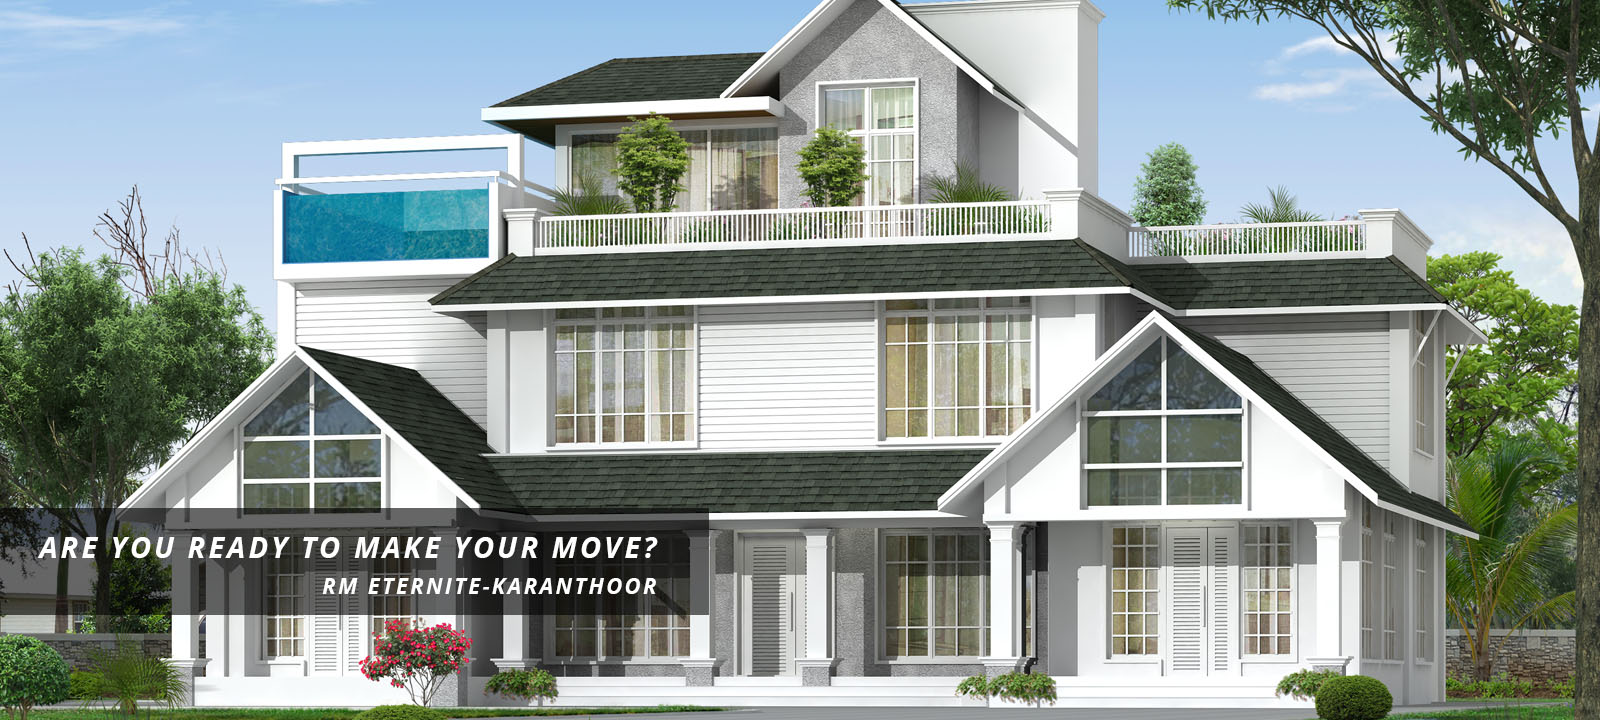 Rayo Martin | Builders and developers|Kozhikode|Properties Kozhikode on most popular house plans, 2 bedroom house plans, internet house plans, color house plans, 2013 best small house plans, small budget house plans, interactive house plans, sci-fi house plans, 3 bedroom house plans, single story modern house design plans, short house plans, to build inexpensive house plans, erotic house plans, mother-in-law house plans, top rated small house plans, dark house plans, affordable house plans, small-scale house plans, brilliant house plans, art house plans,